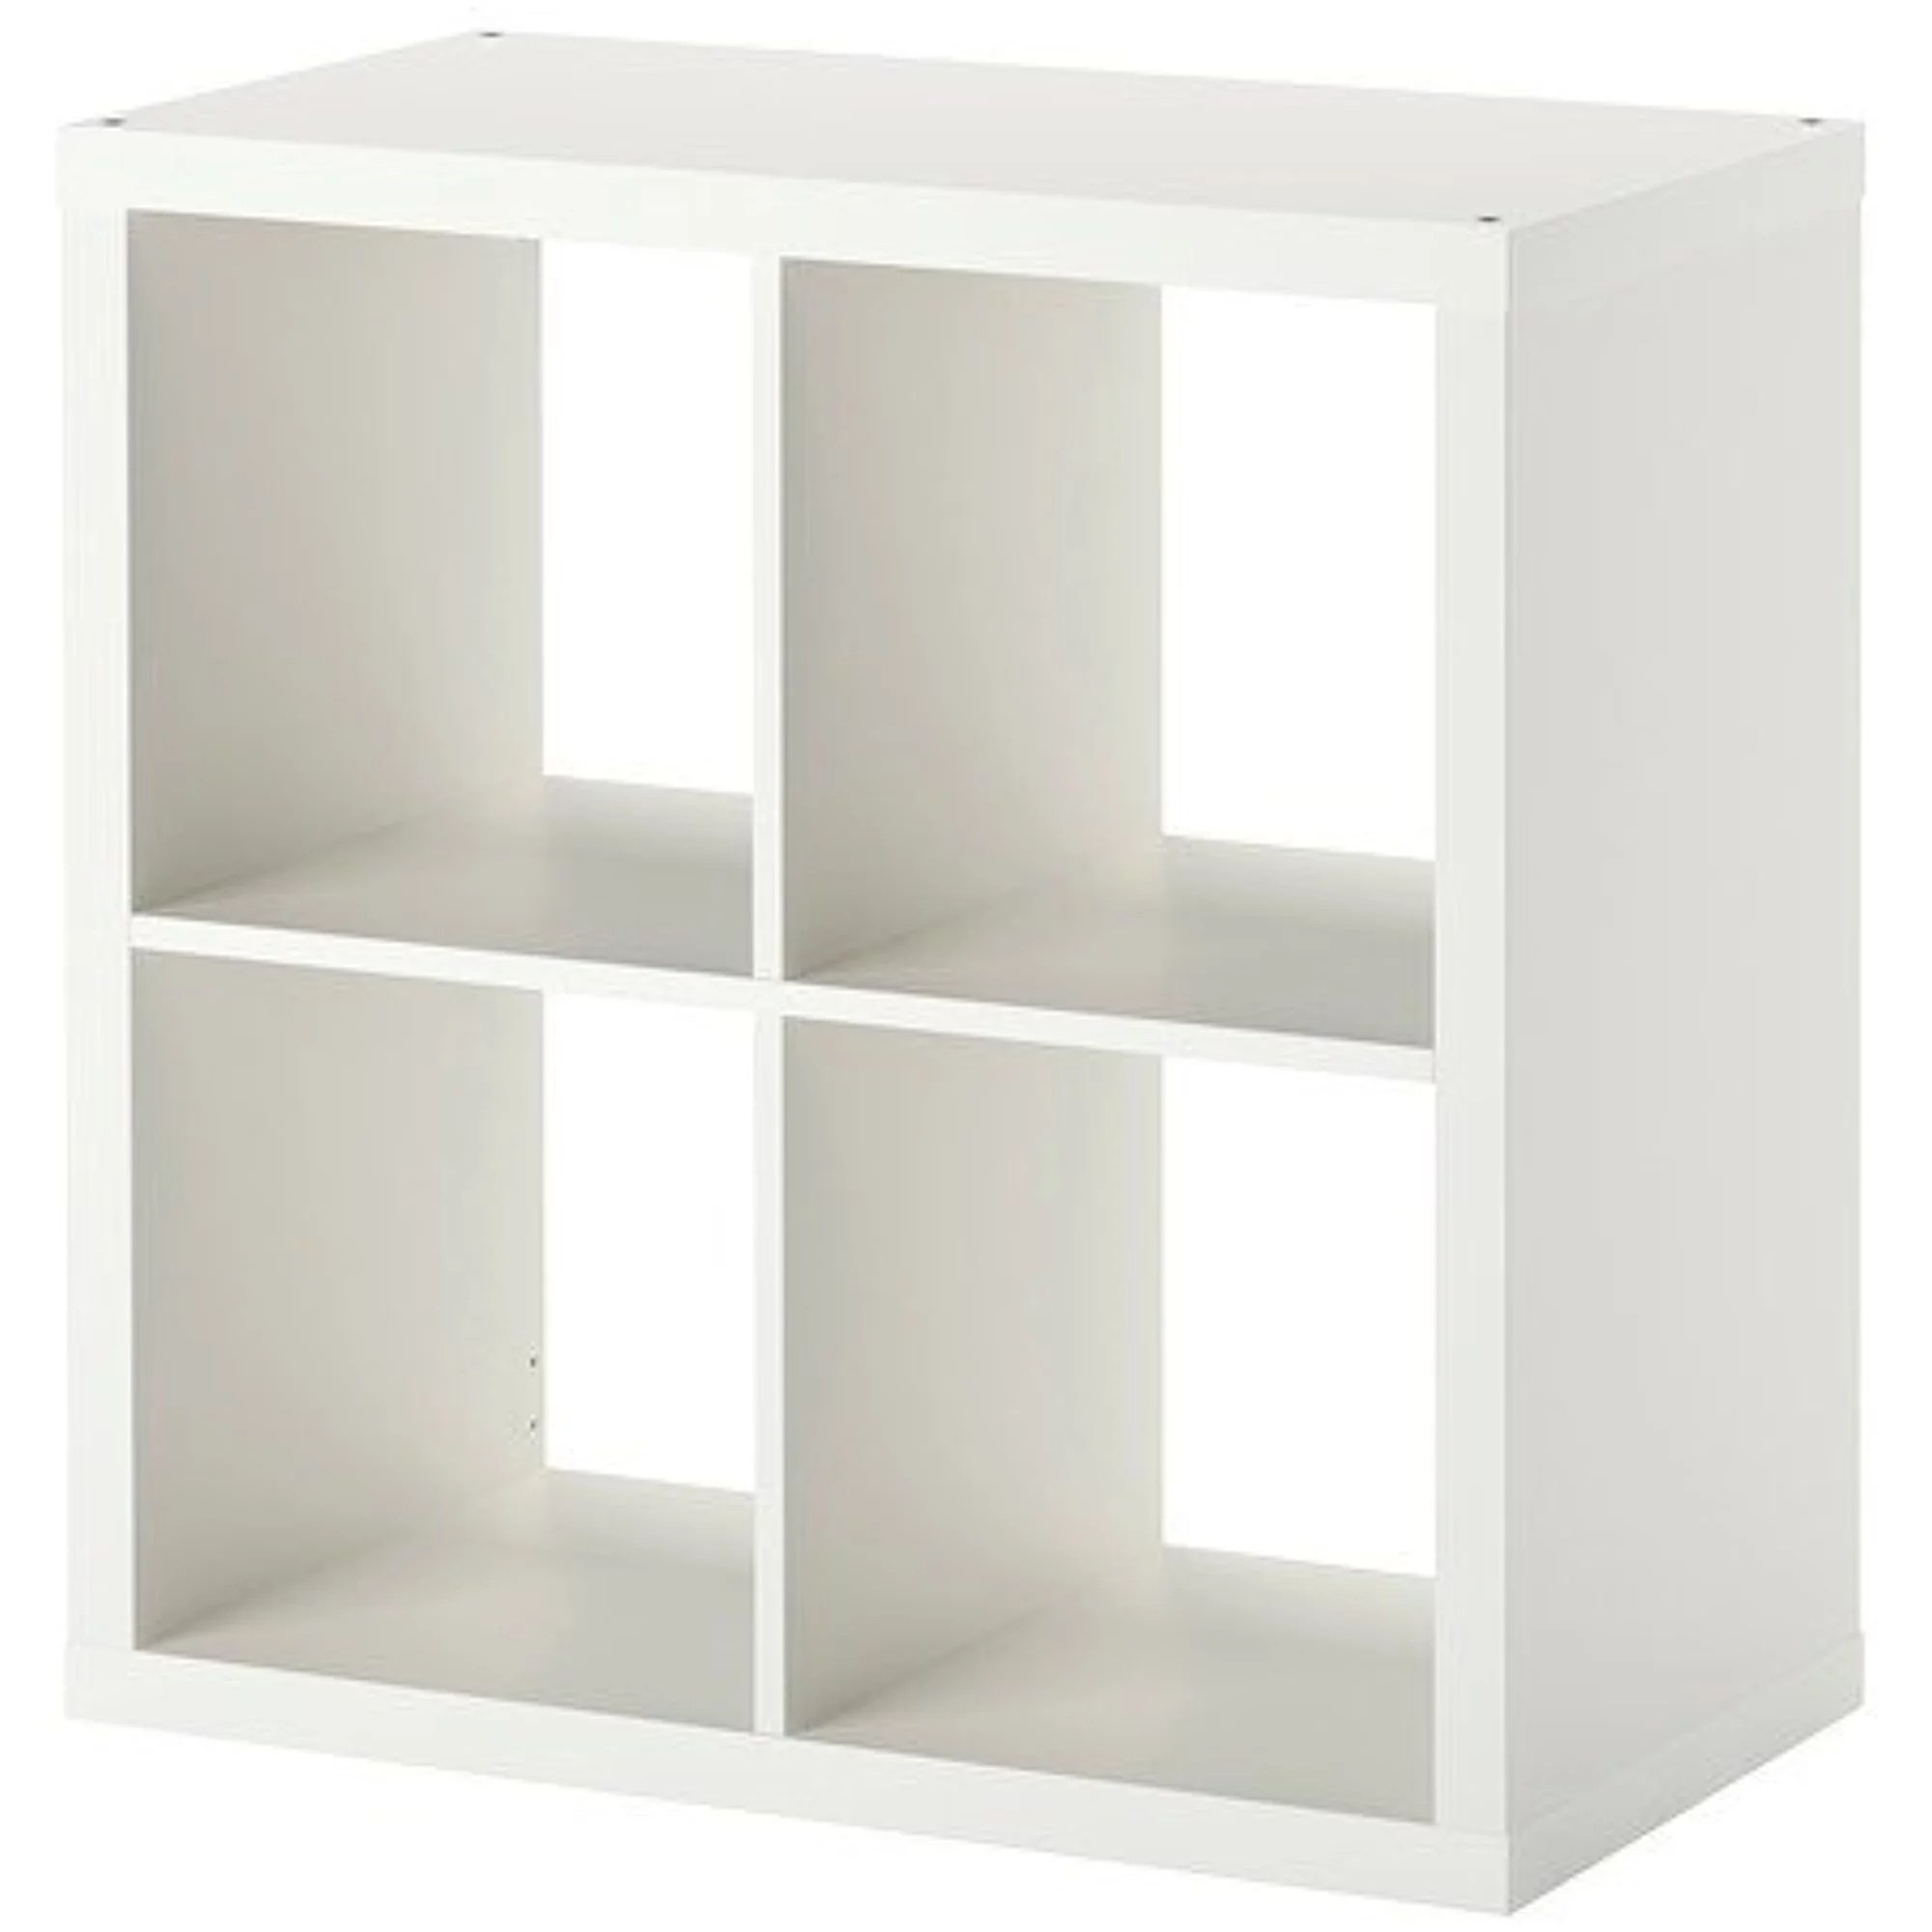 Ikea Cubes Ikea Kallax Bookcase Shelving Unit Cube Display 10210 231726 410